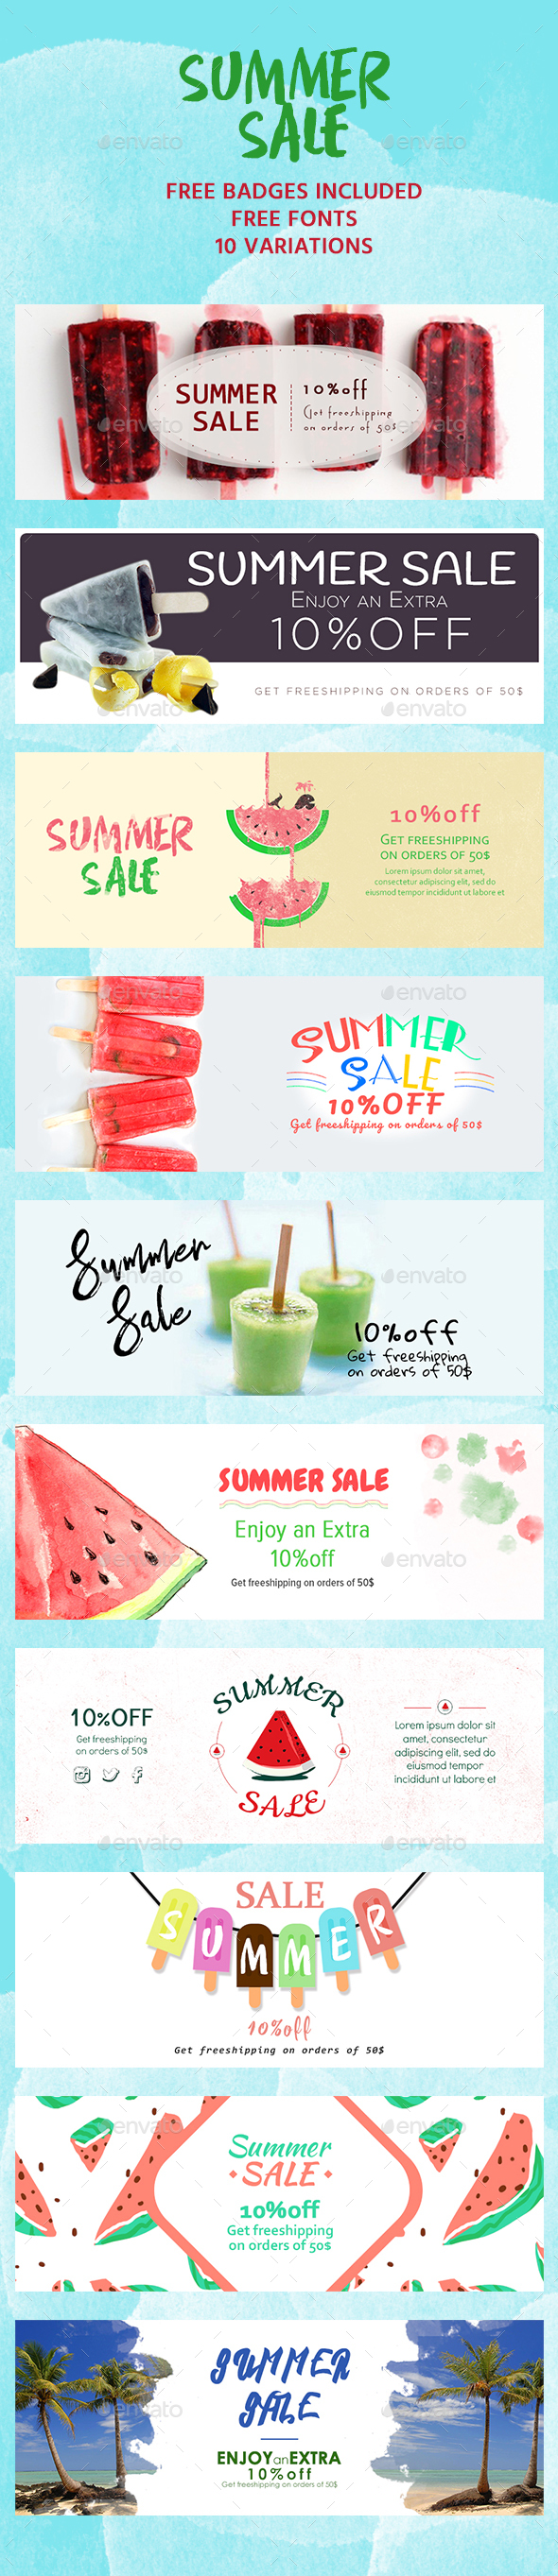 Summer Sale Banners - Banners & Ads Web Elements